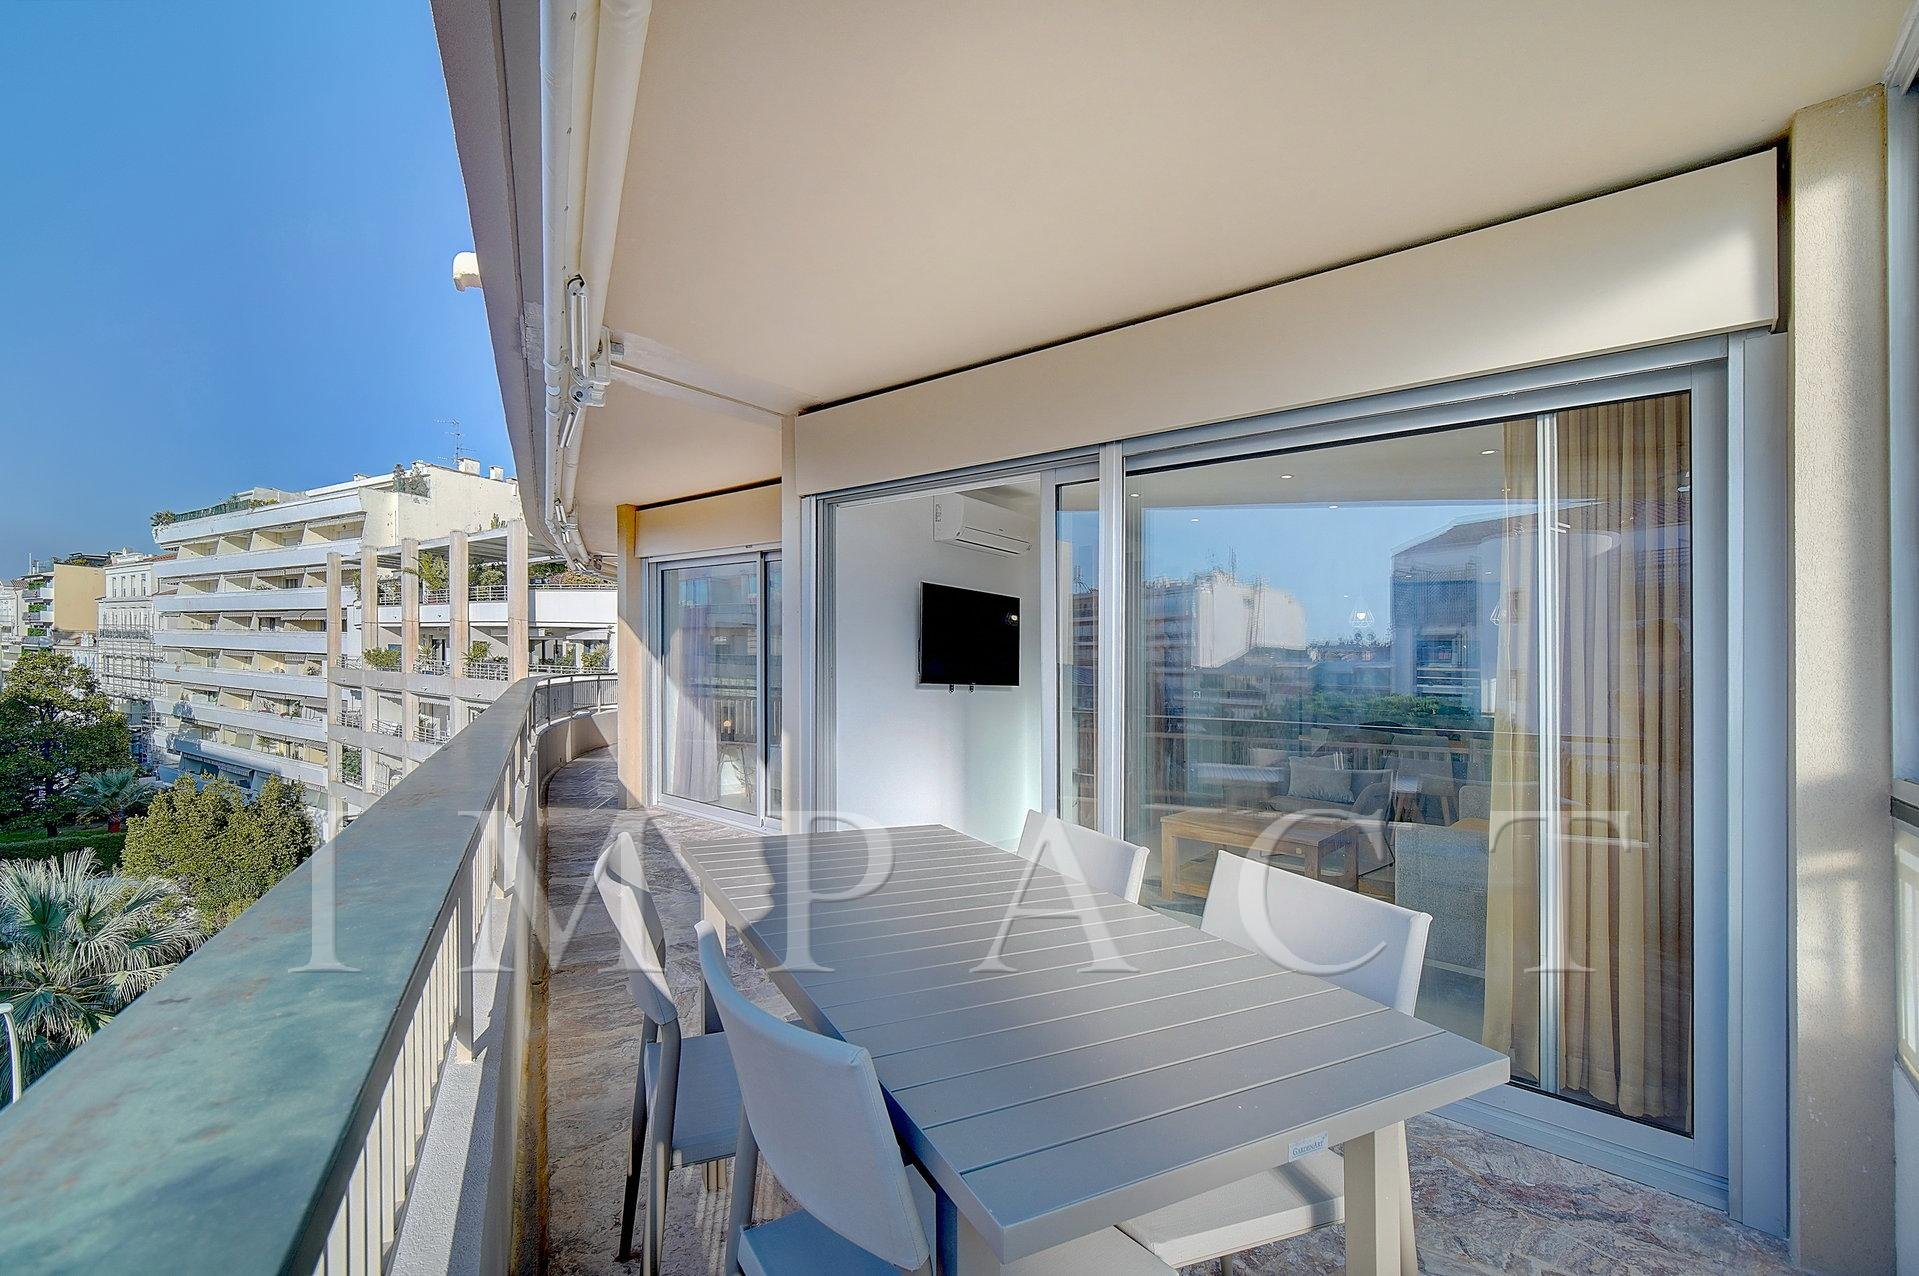 4 room apartment completely renovated to rent in the Center Cannes